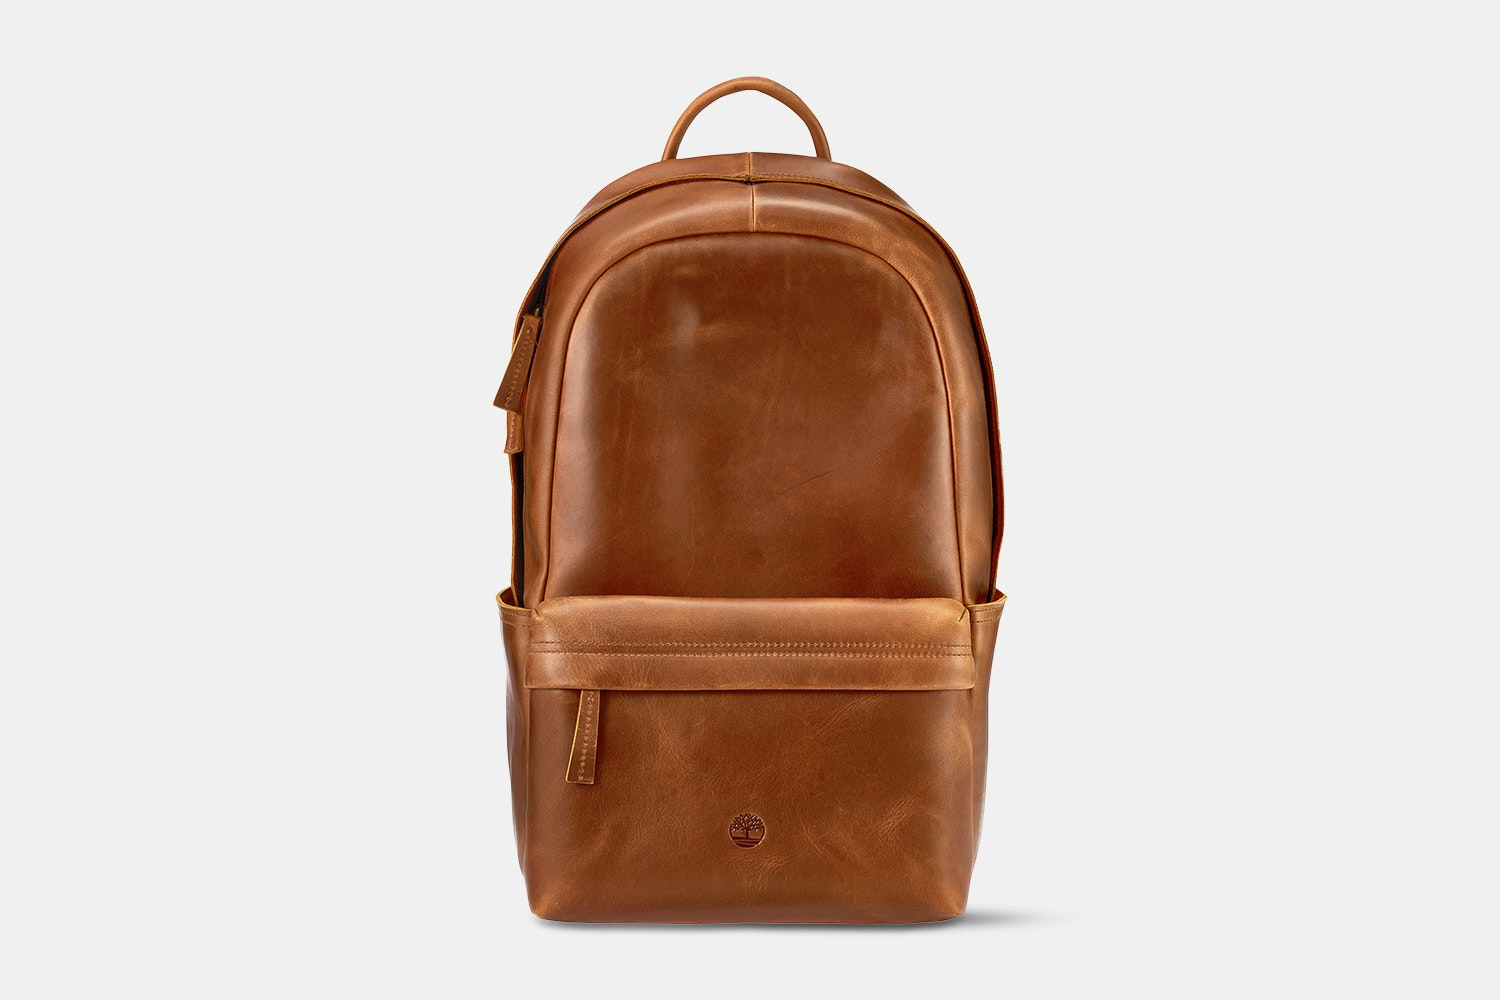 Timberland Tuckerman Leather Backpack